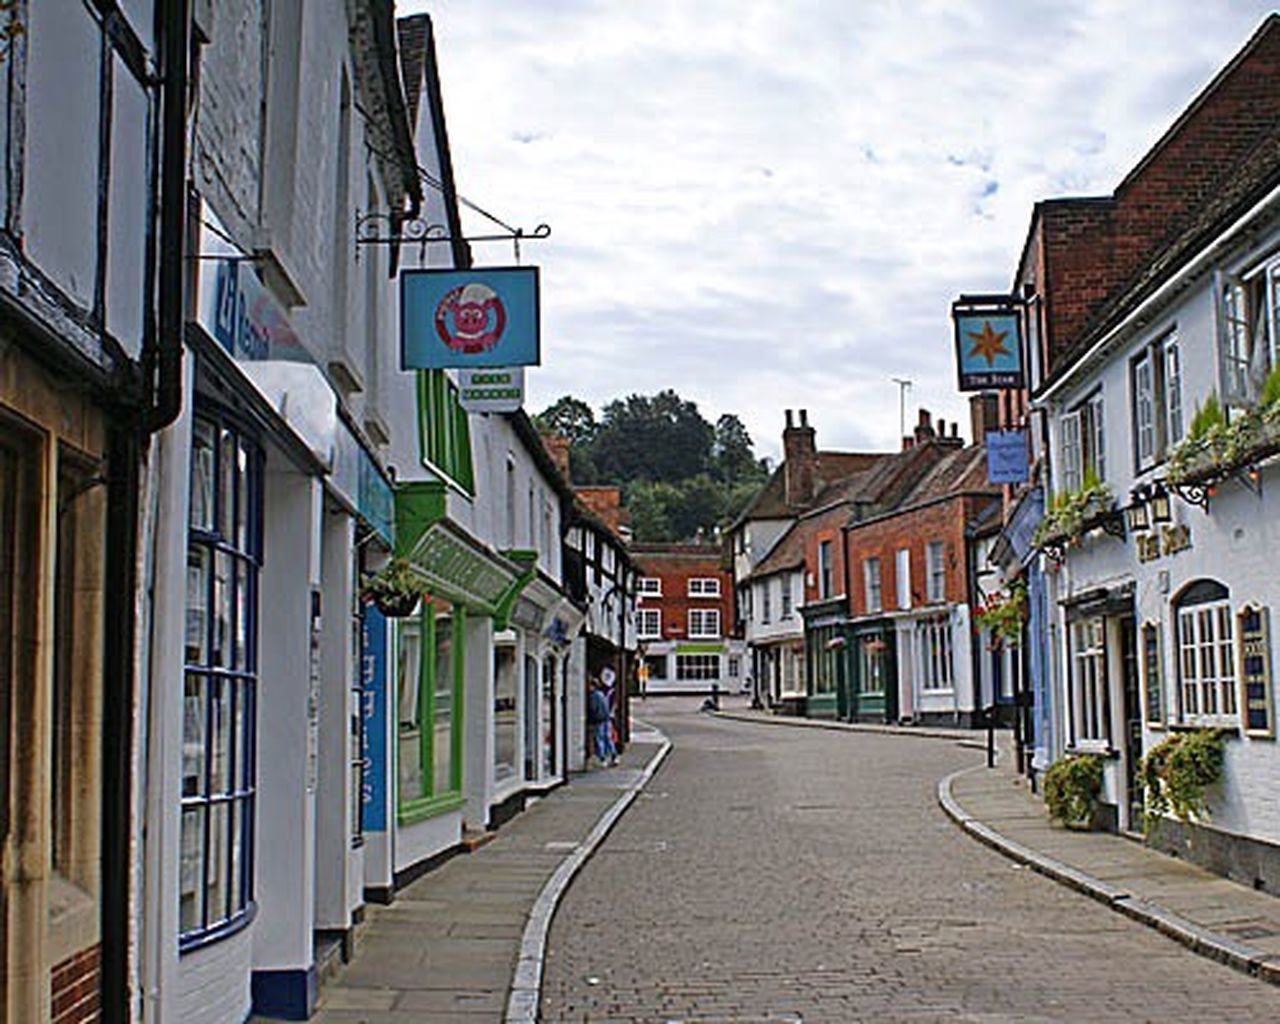 Church Street in Godalming Surrey UK. Church Churches Church Street Godalming Surrey uk England The Holiday